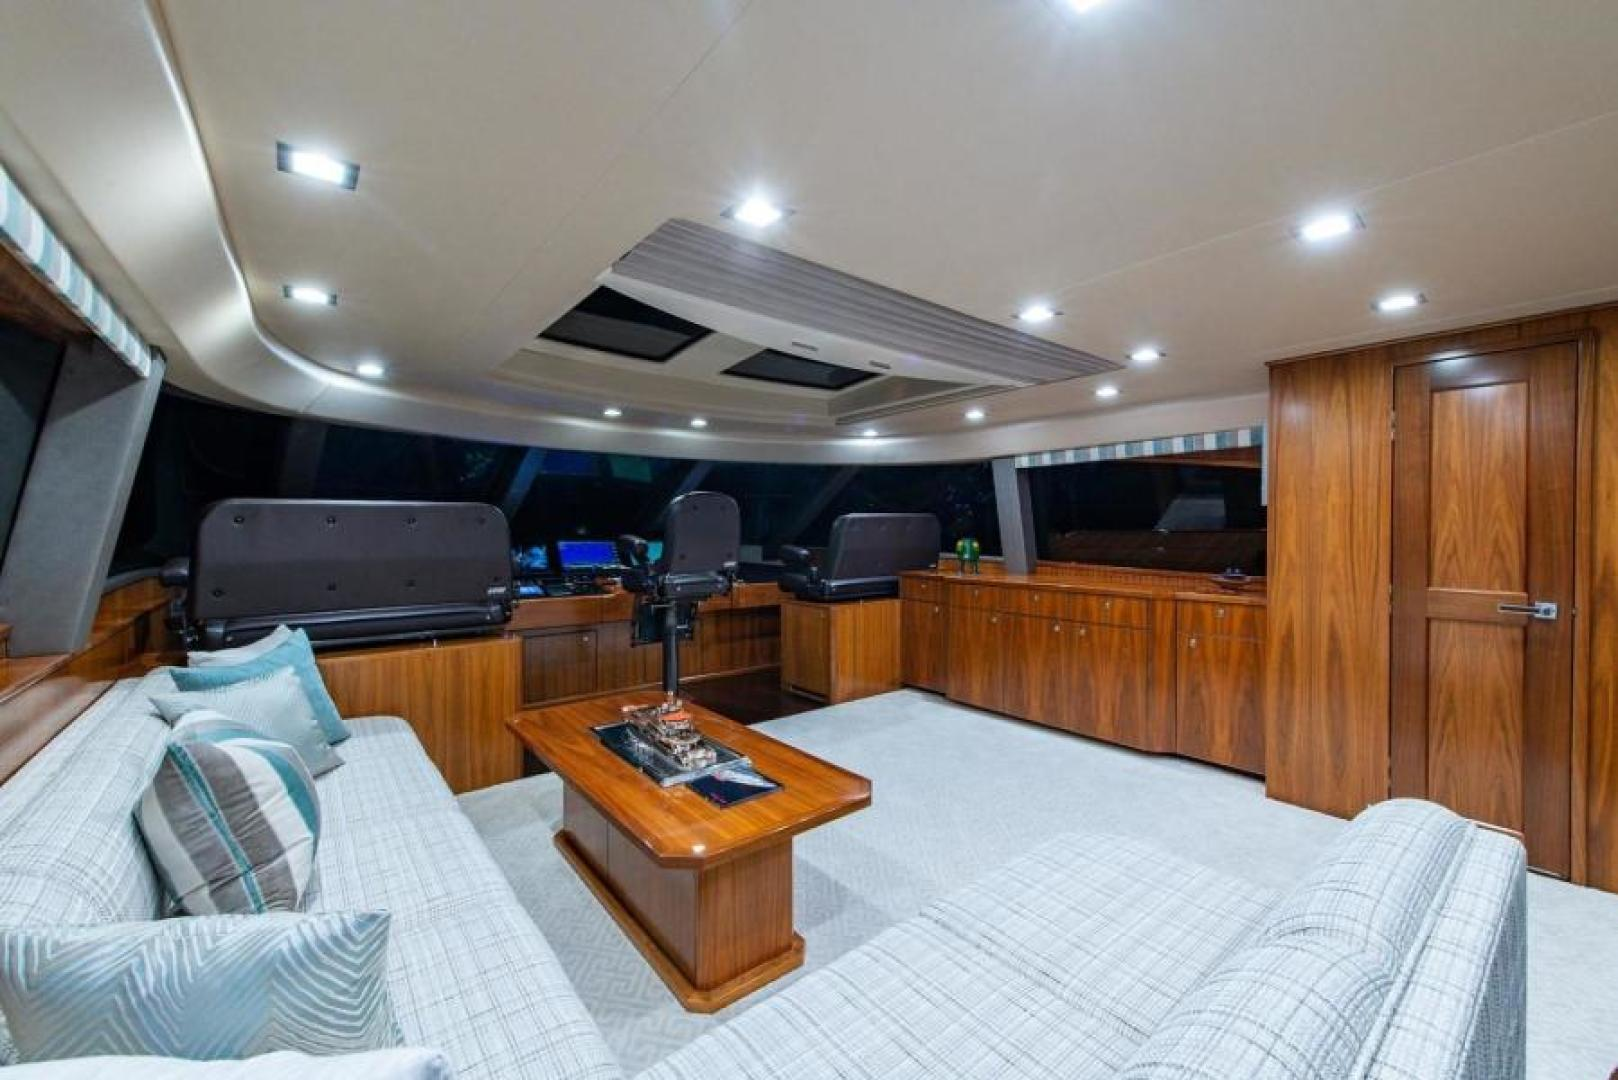 Viking-Motoryacht Enclosed Flybridge 2018-BOOK ENDS Fort Lauderdale-Florida-United States-Enclosed Flybridge-1470637 | Thumbnail